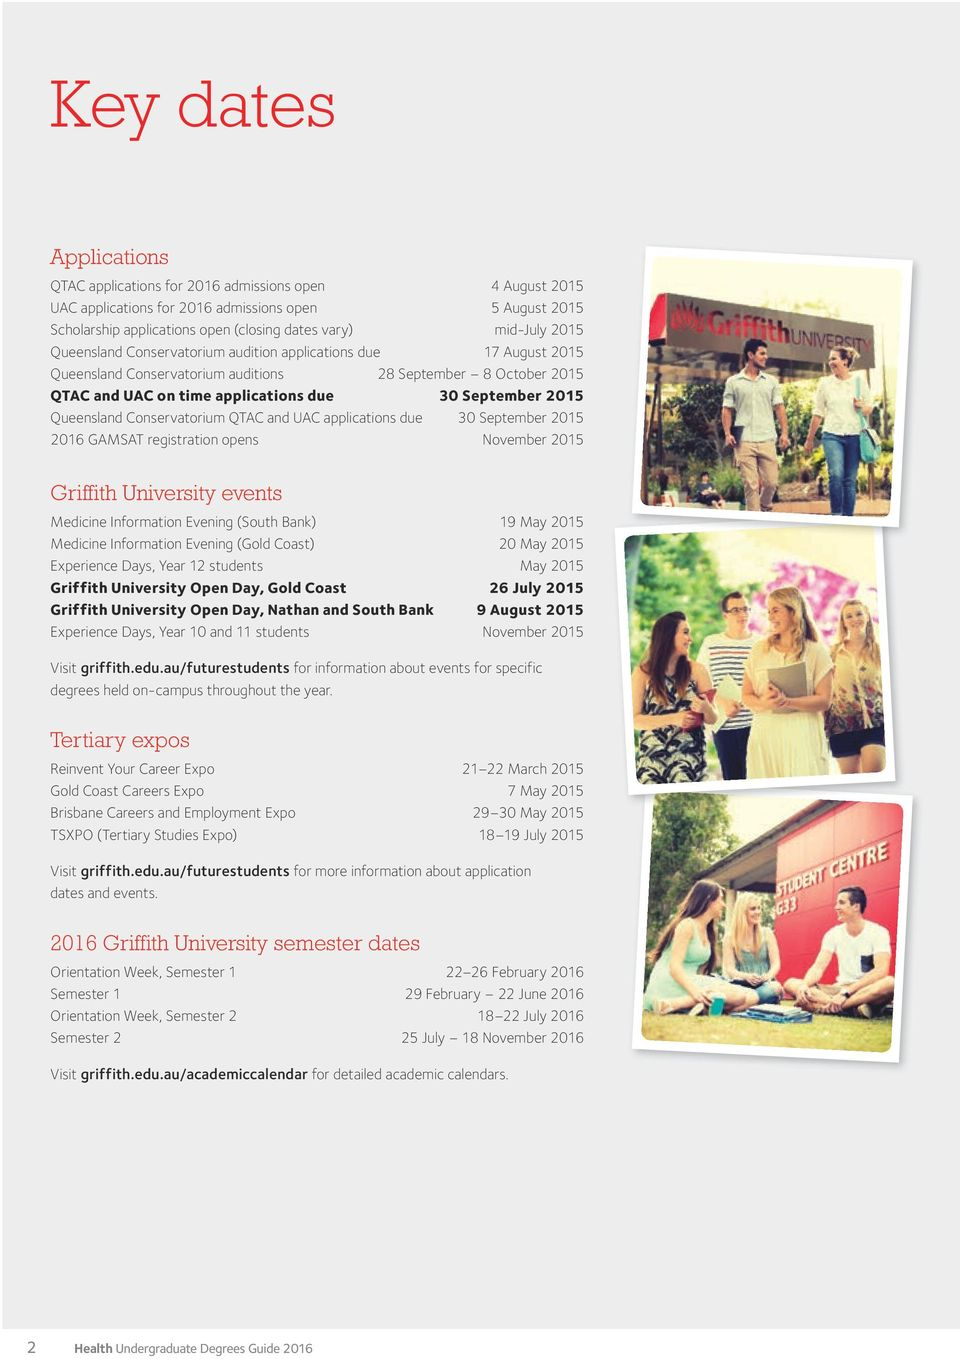 Queensland Conservatorium QTAC and UAC applications due 30 September 2015 2016 GAMSAT registration opens November 2015 Griffith University events Medicine Information Evening (South Bank) 19 May 2015